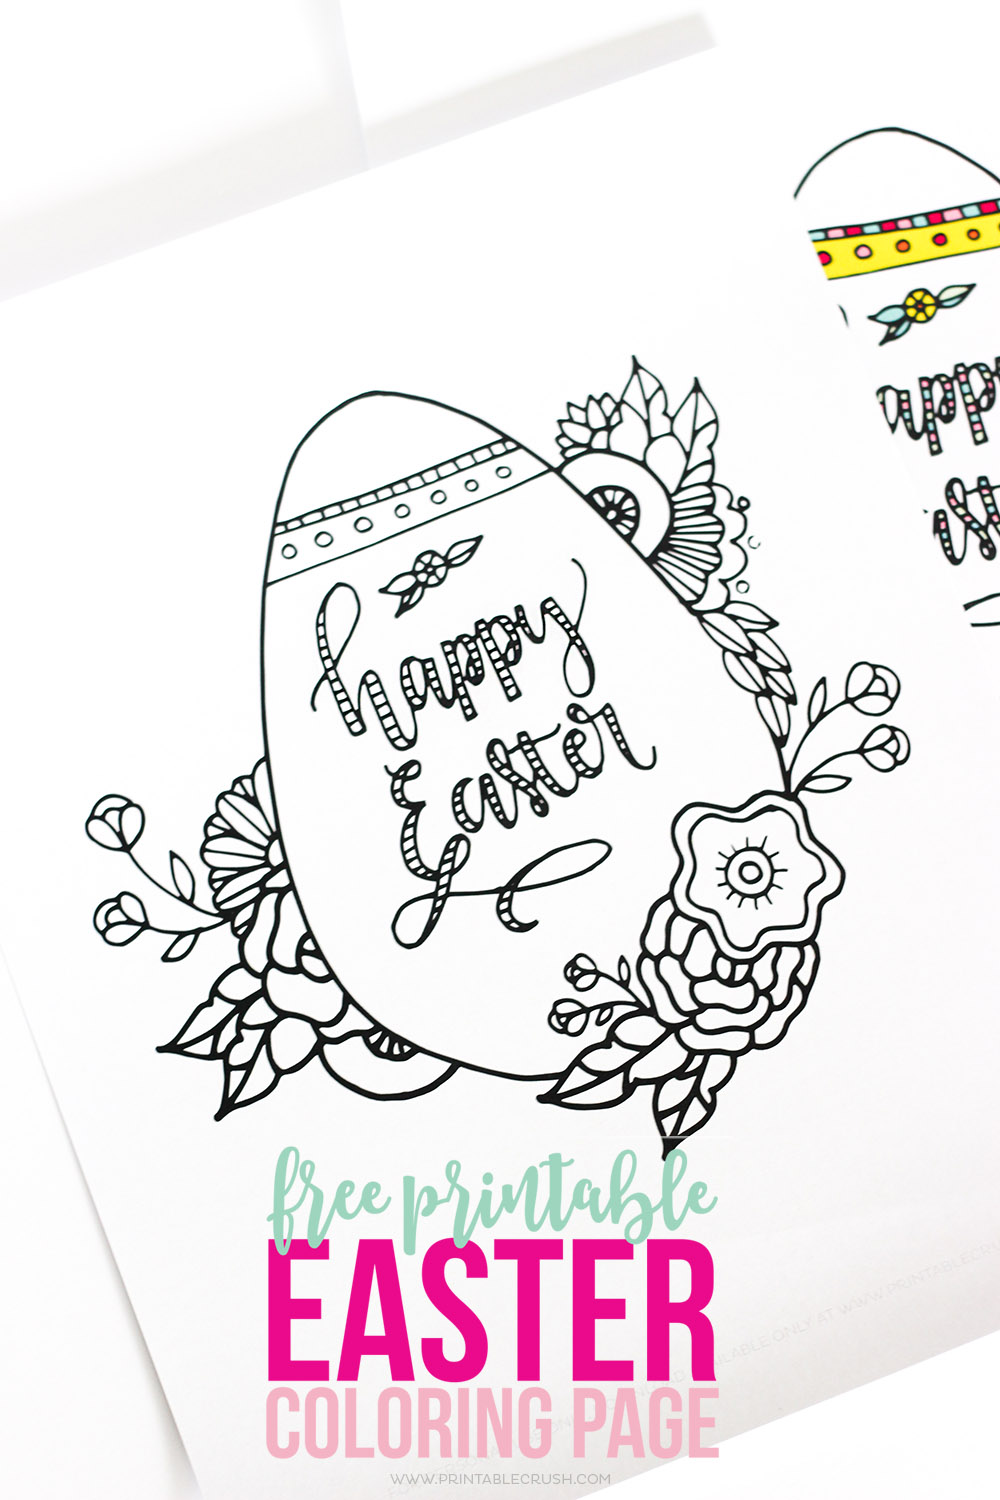 photo about Free Printable Easter Pictures named Easter Coloring Web pages - No cost Printable Children Appreciate!